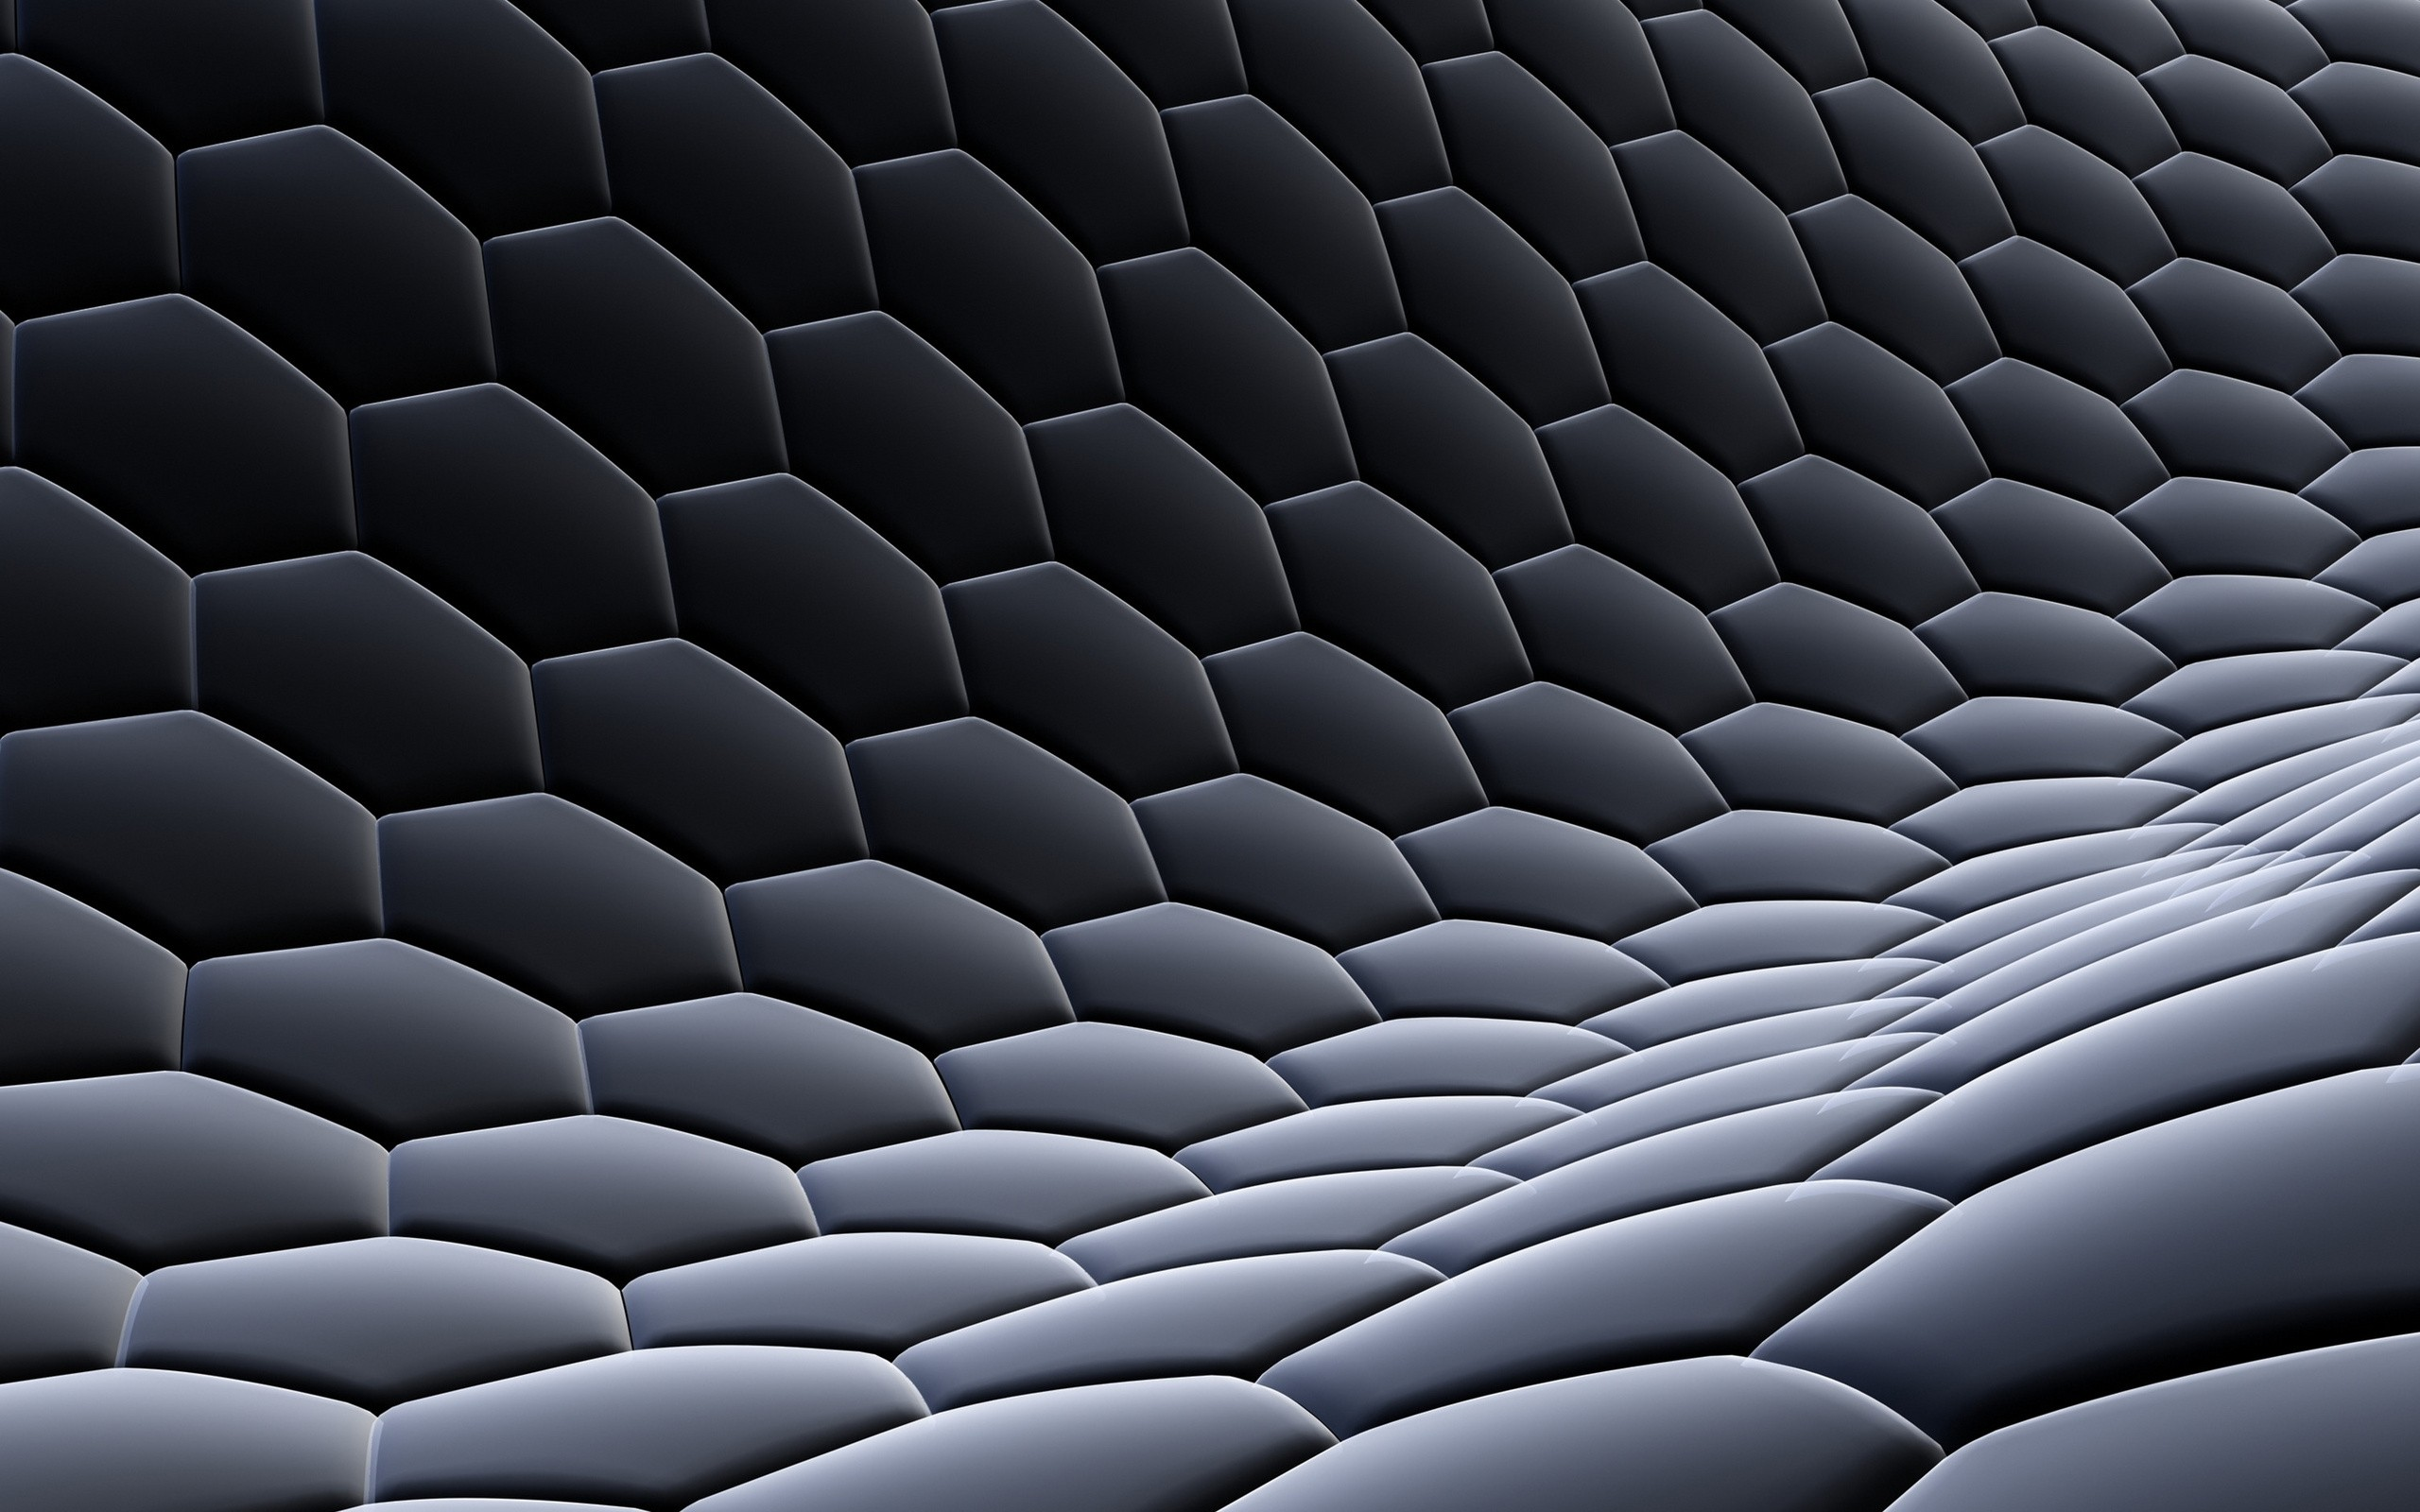 3D view, abstract, dark, design, hexagons, digital art, honeycomb - desktop wallpaper